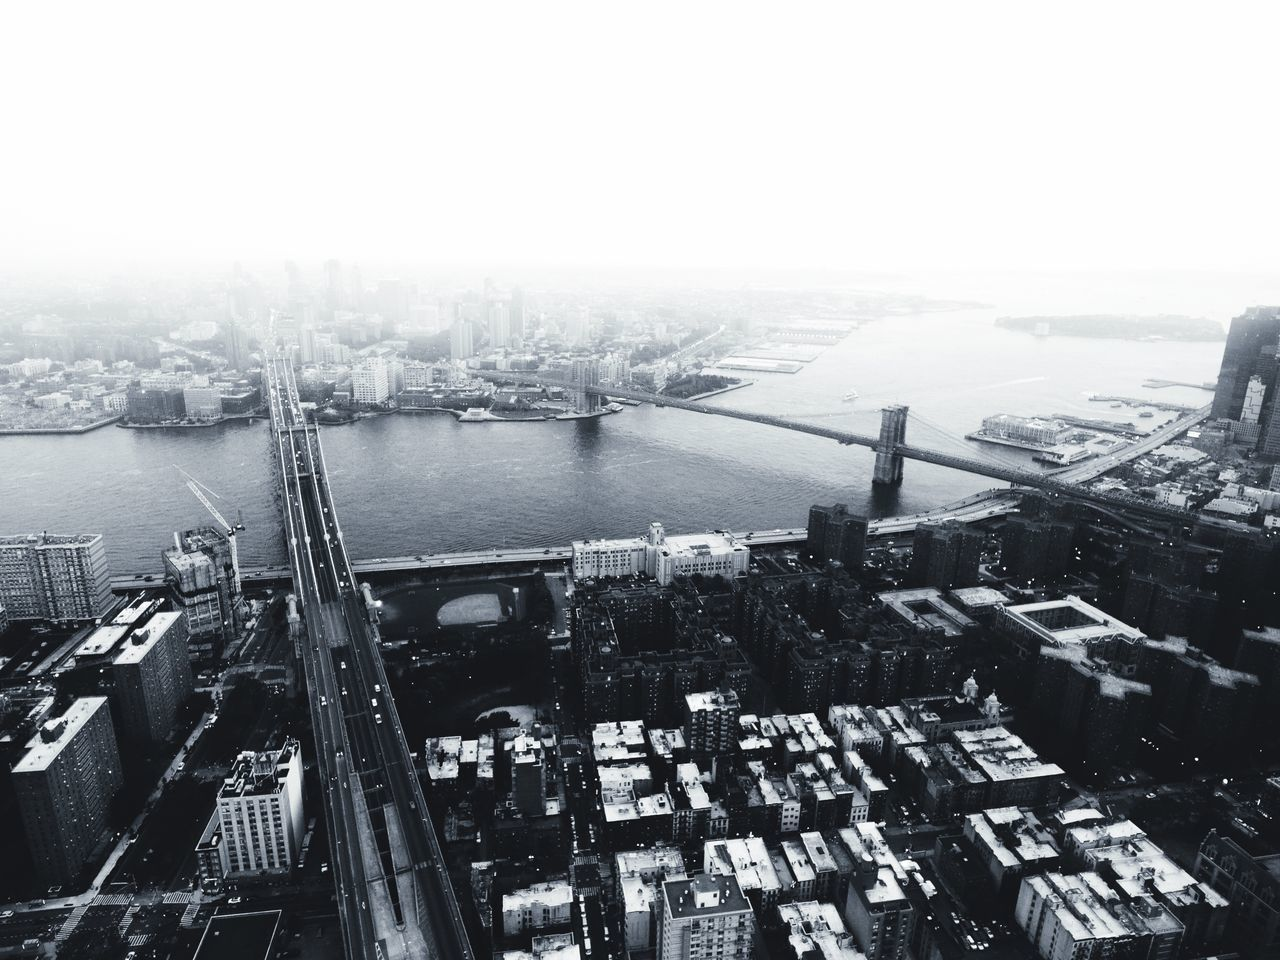 So lately I've been putting a lot of work into producing more video content, so apologies for the lack of posting here! Go check out my YouTube channel to see what's been going on, and let me know what you think! ✌🏽️ Architecture Dronephotography Dji New York NYC Aerial Photography Blackandwhite Monochrome